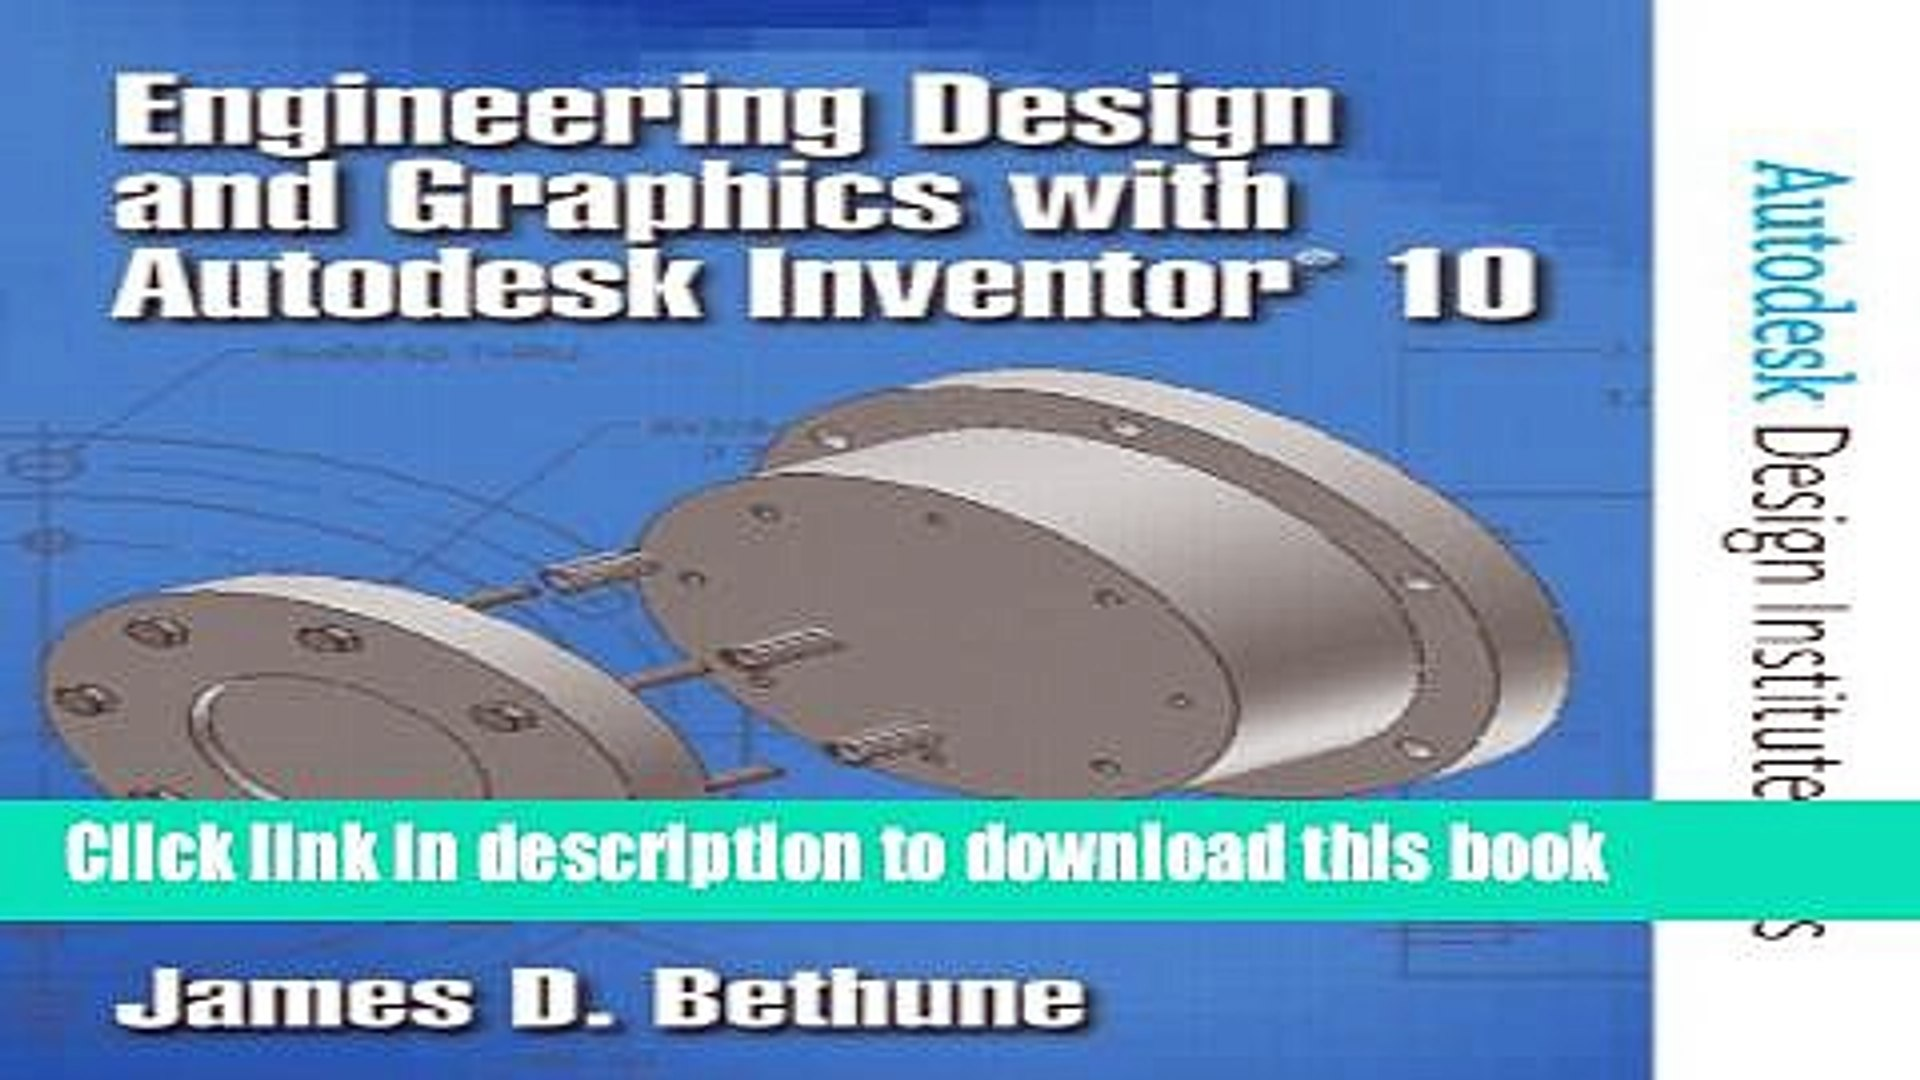 [Read PDF] Engineering Design and Graphics with Autodesk Inventor(R) 10  Download Online